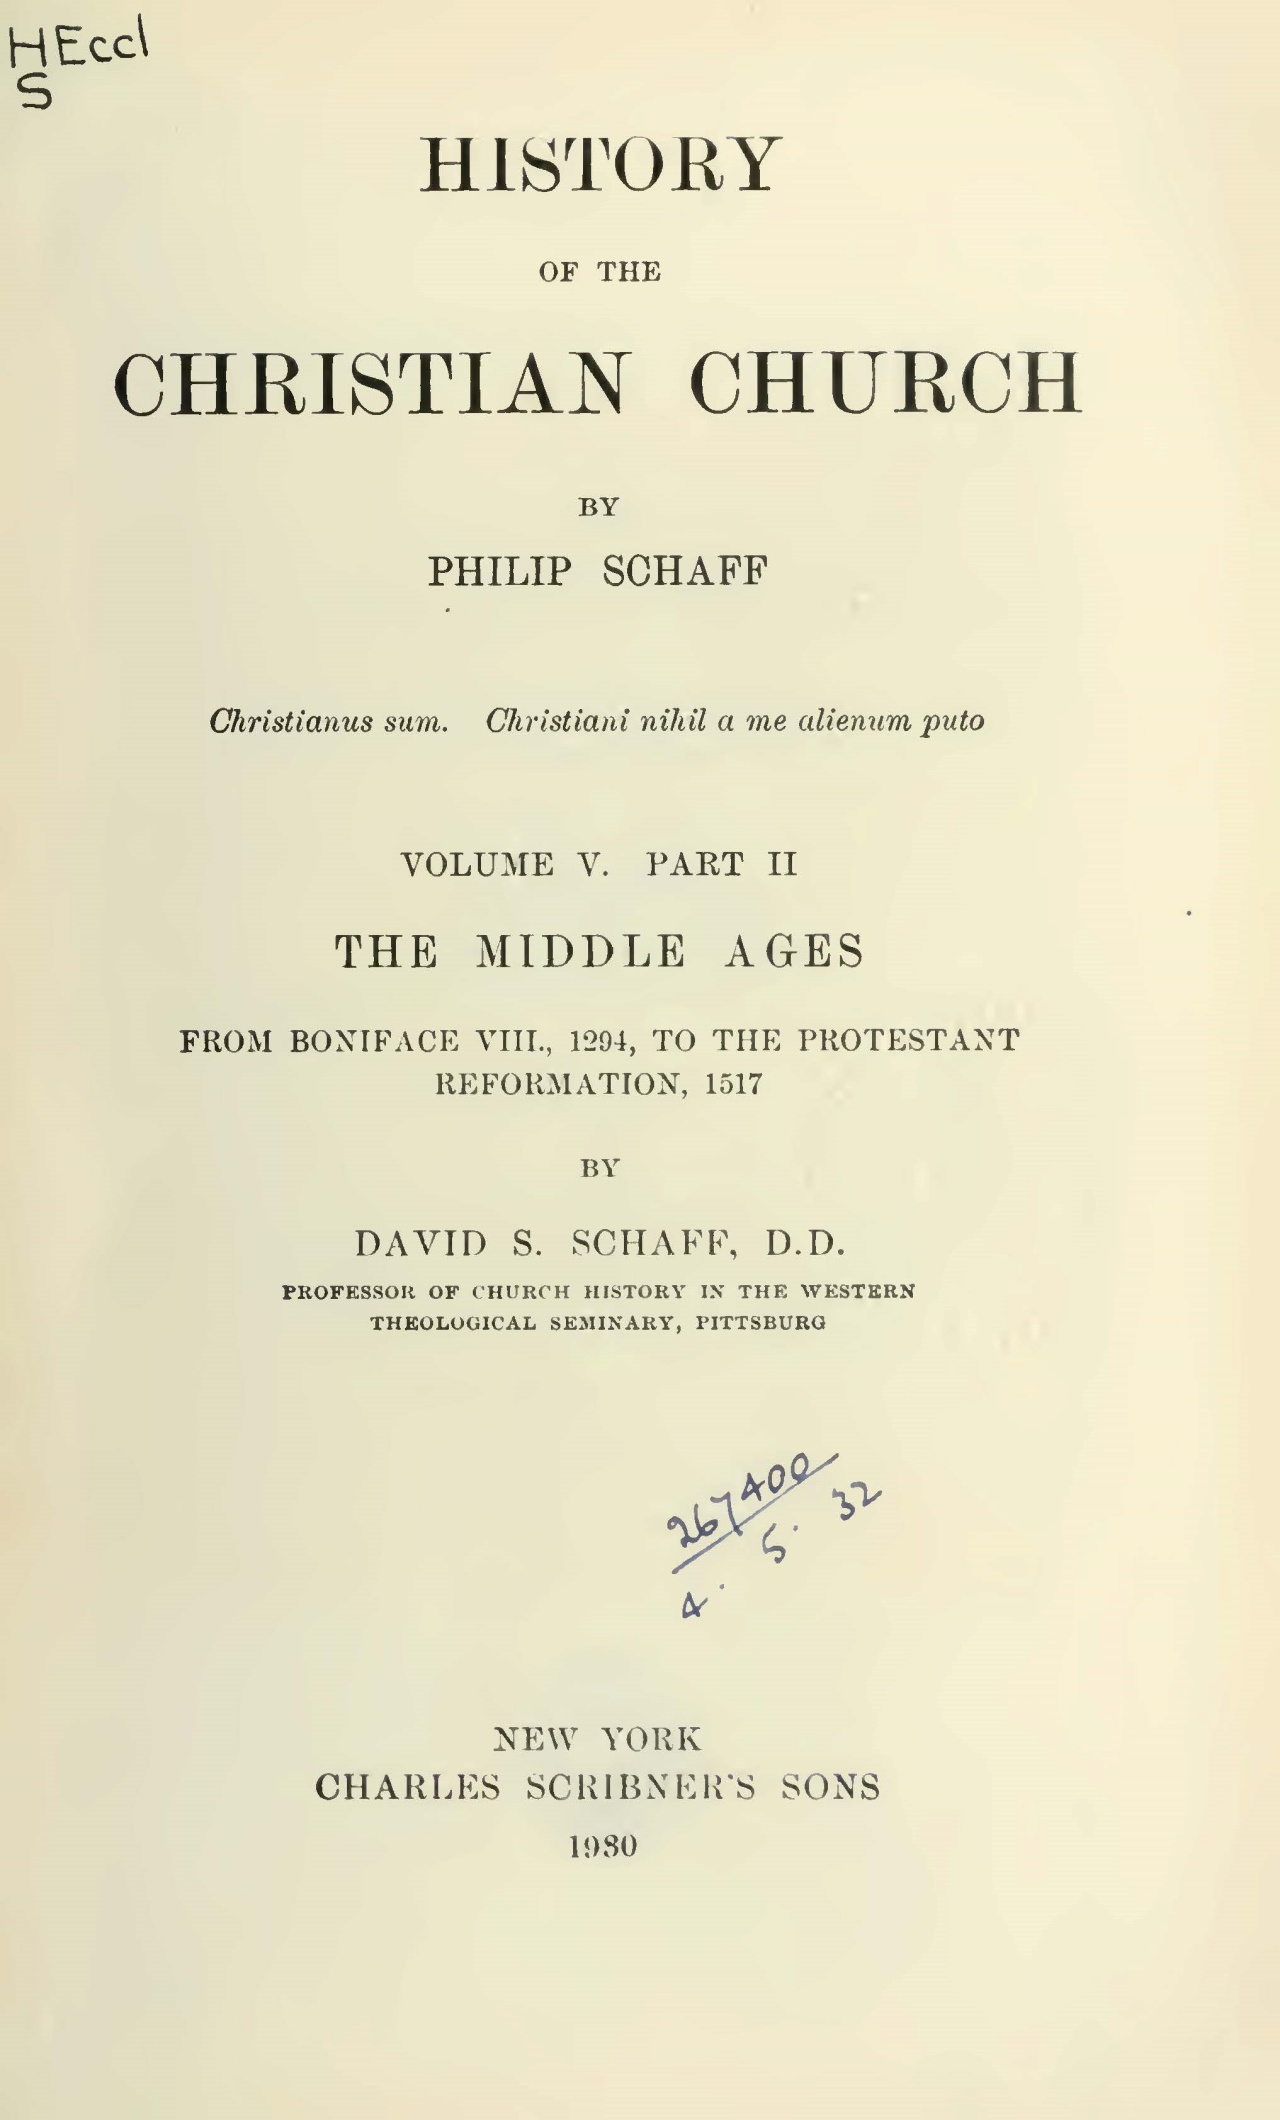 Schaff, Philip, History of the Christian Church, Vol. 5, Pt. 2 Title Page.jpg